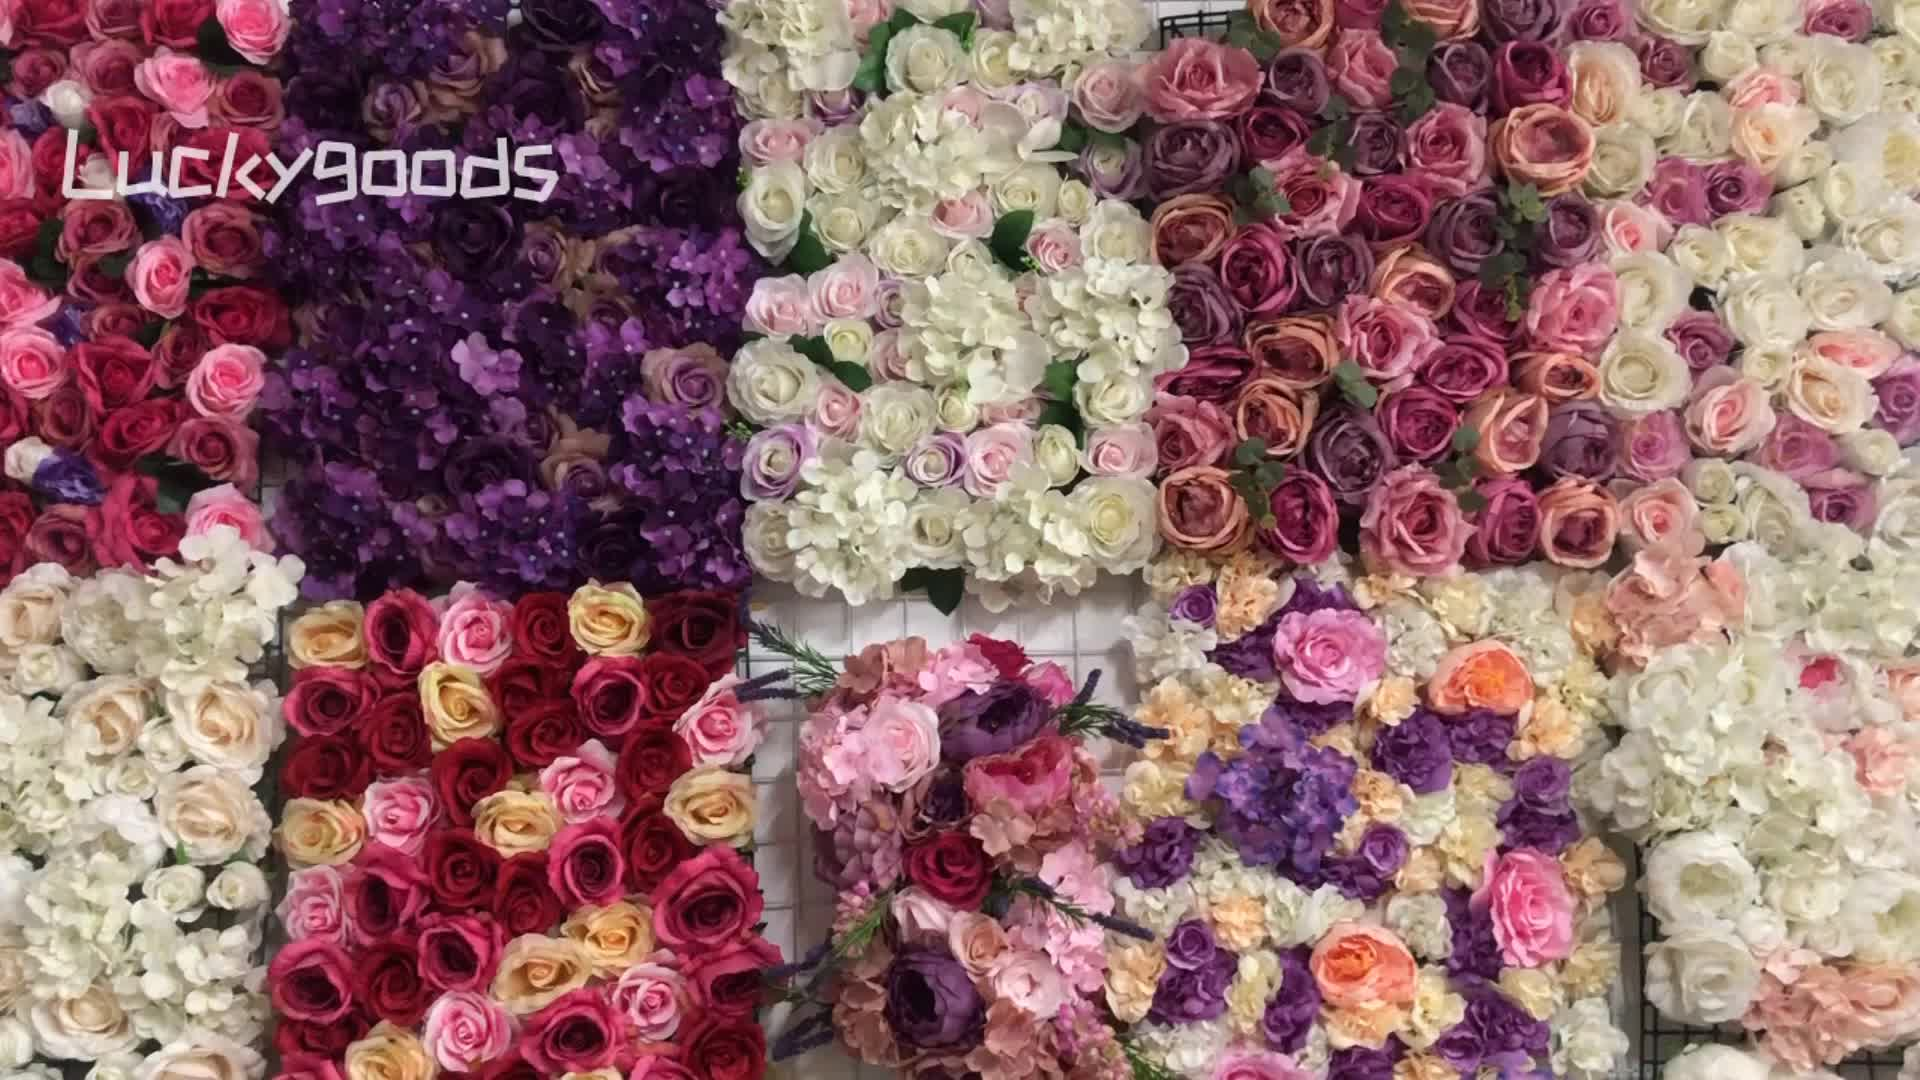 LFB982 garden decoration double layer artificial rose wedding flower wall handmade quality floral wall backdrop for sale